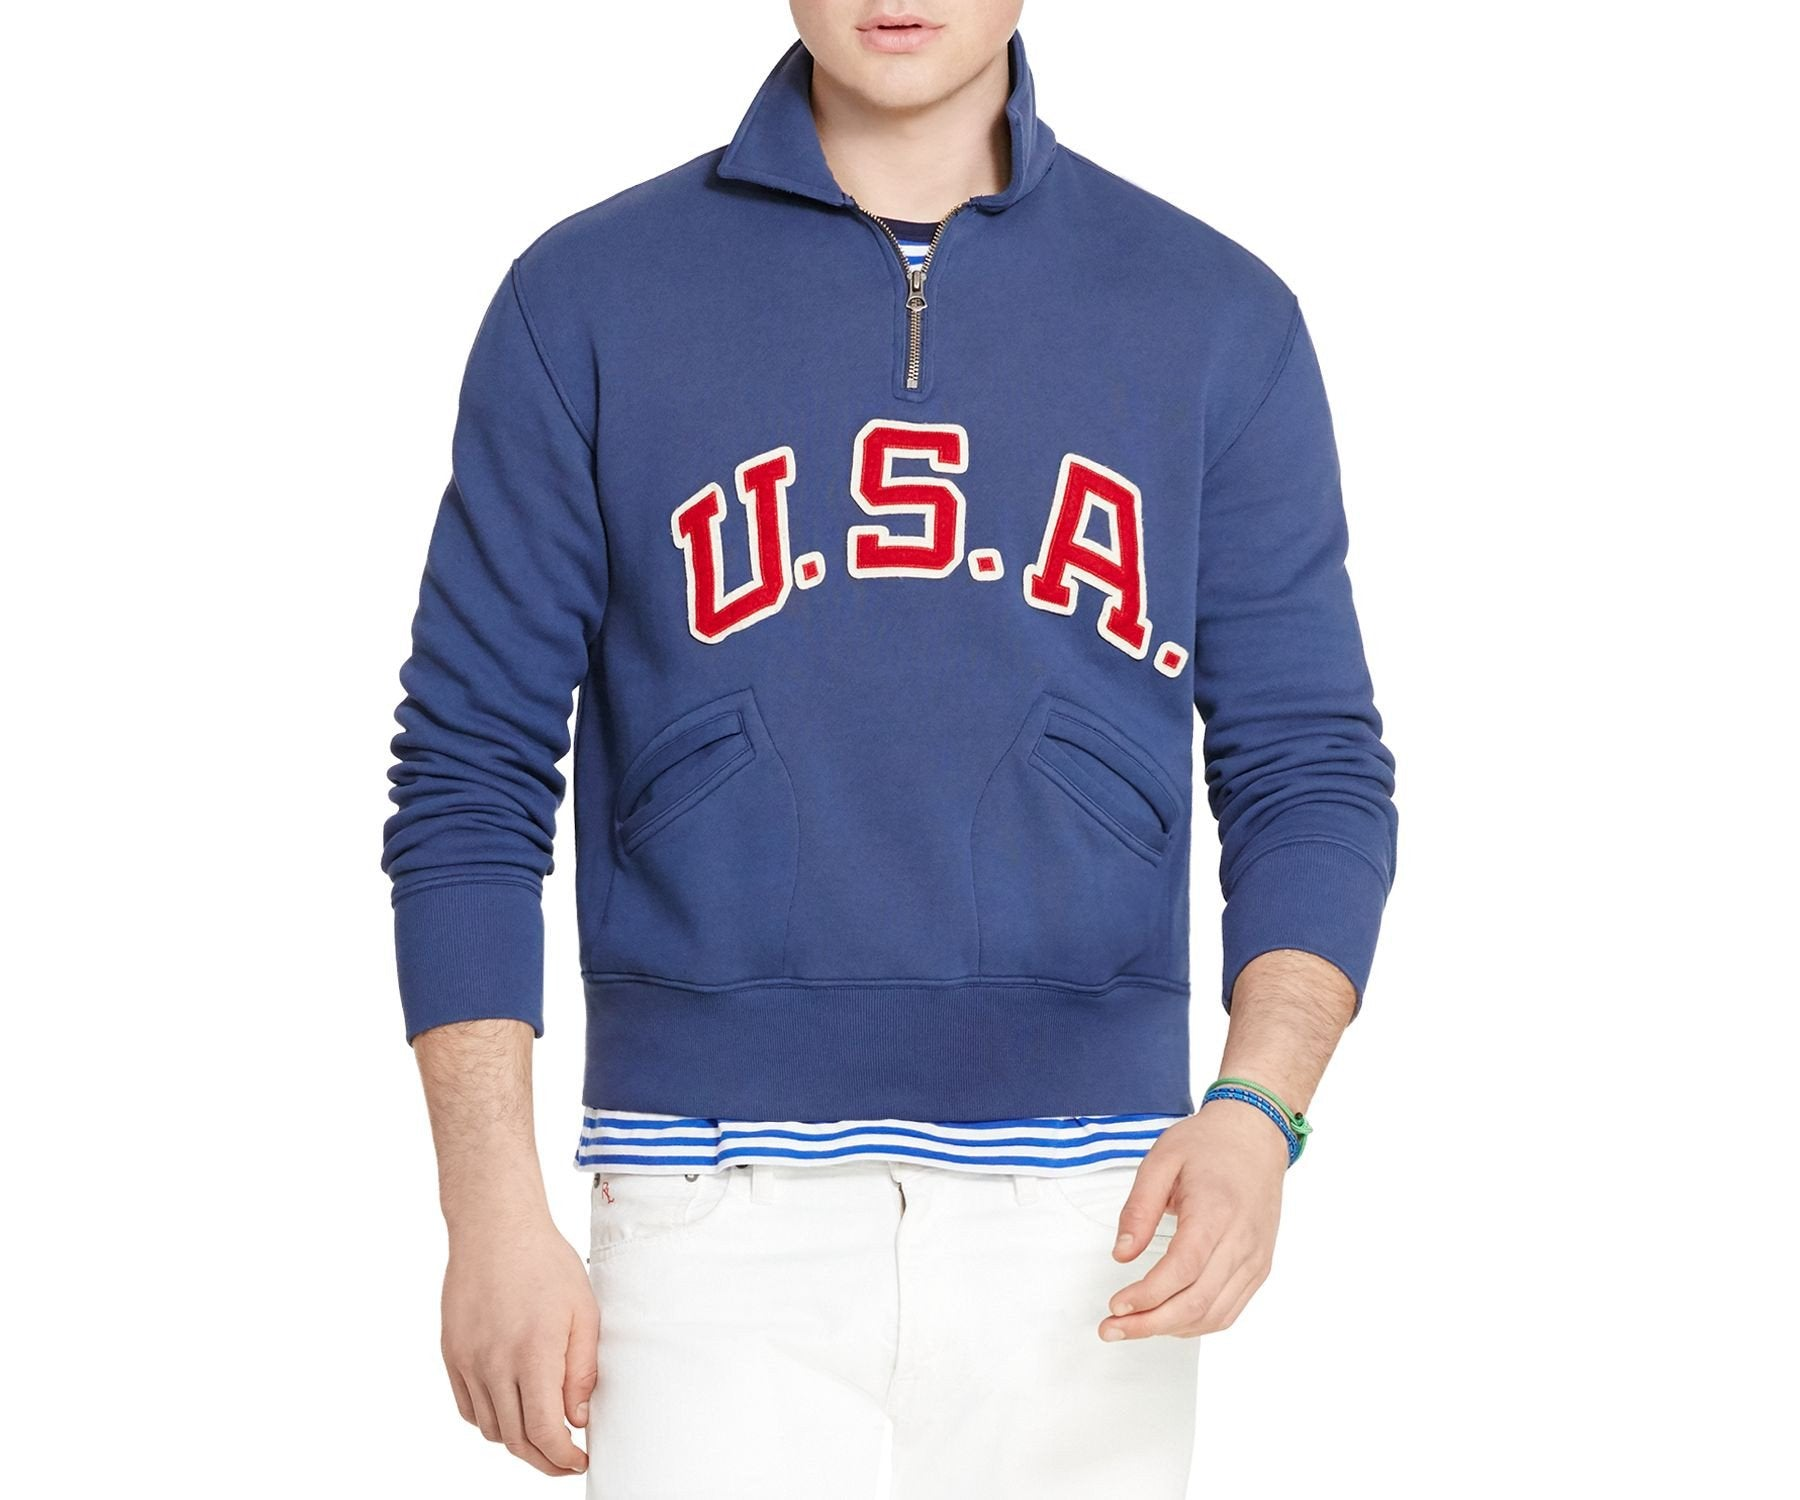 Team USA Fleece Sweatshirt